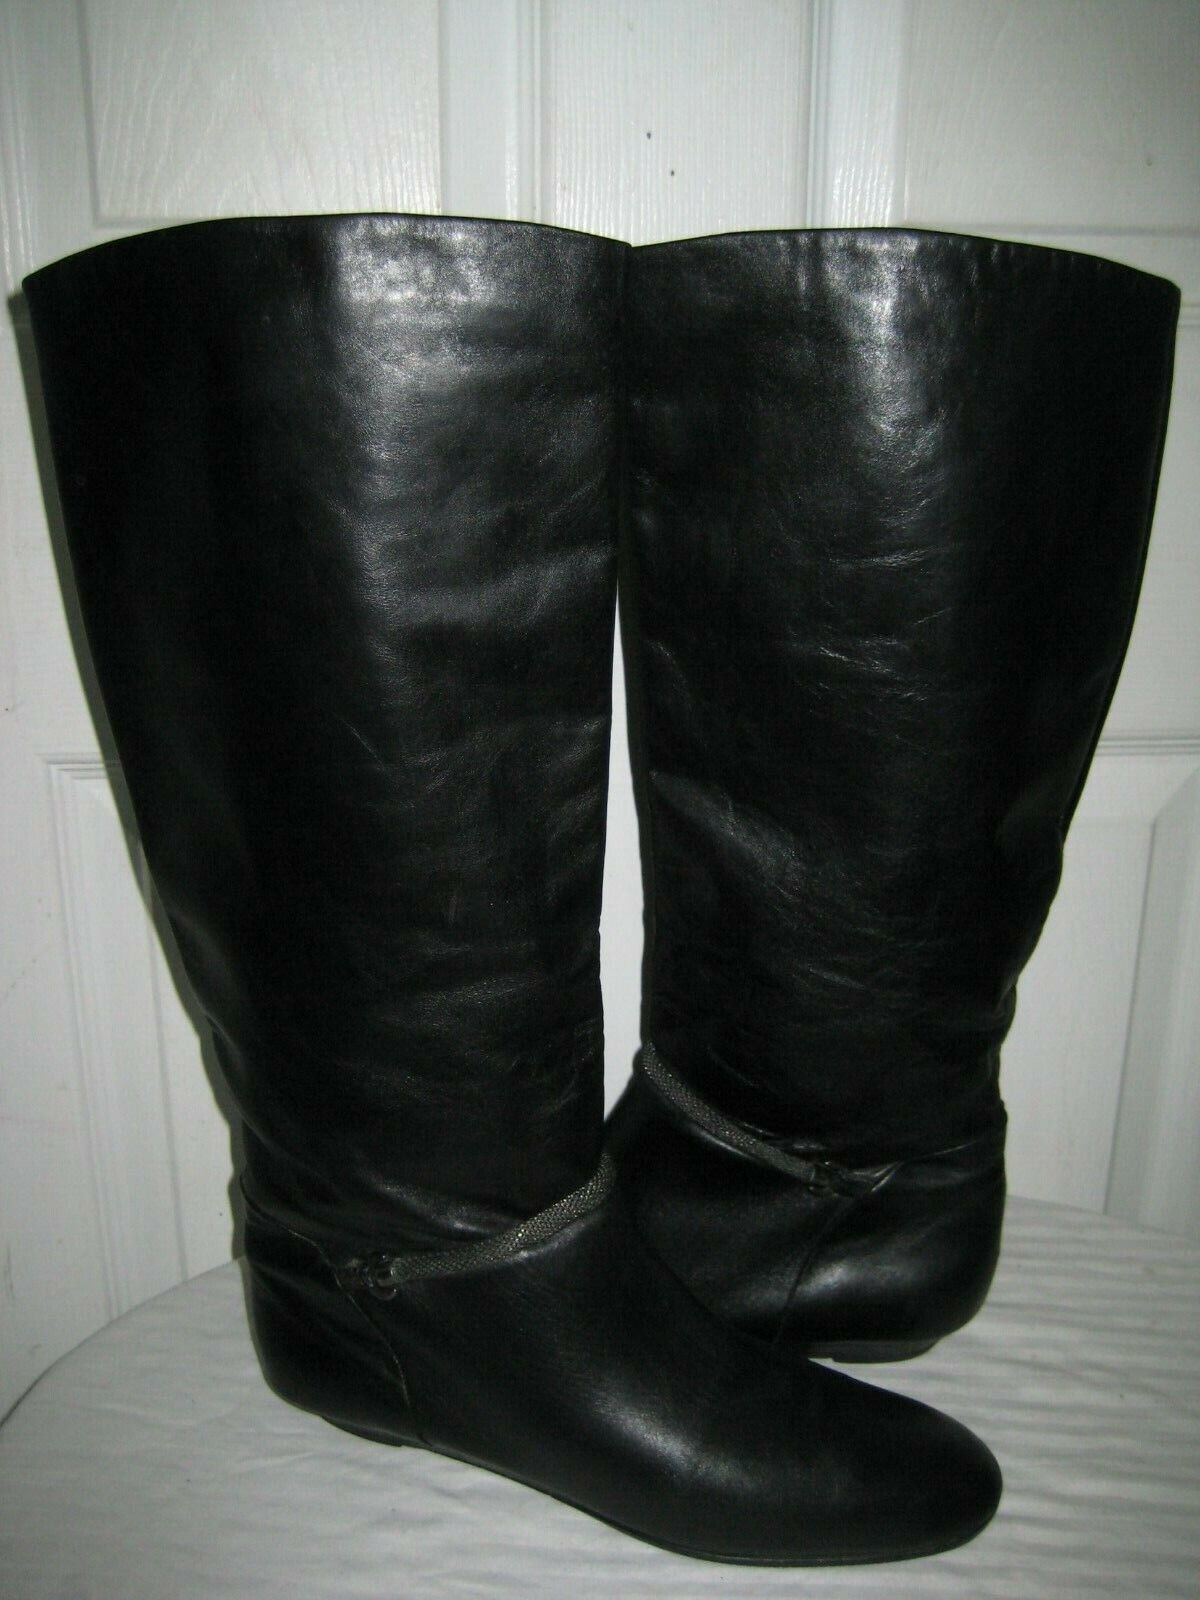 MIGLIORINI BLACK  LEATHER  LOW WEDGE RIDING BOOTS SHOES WOMENS SIZE 10